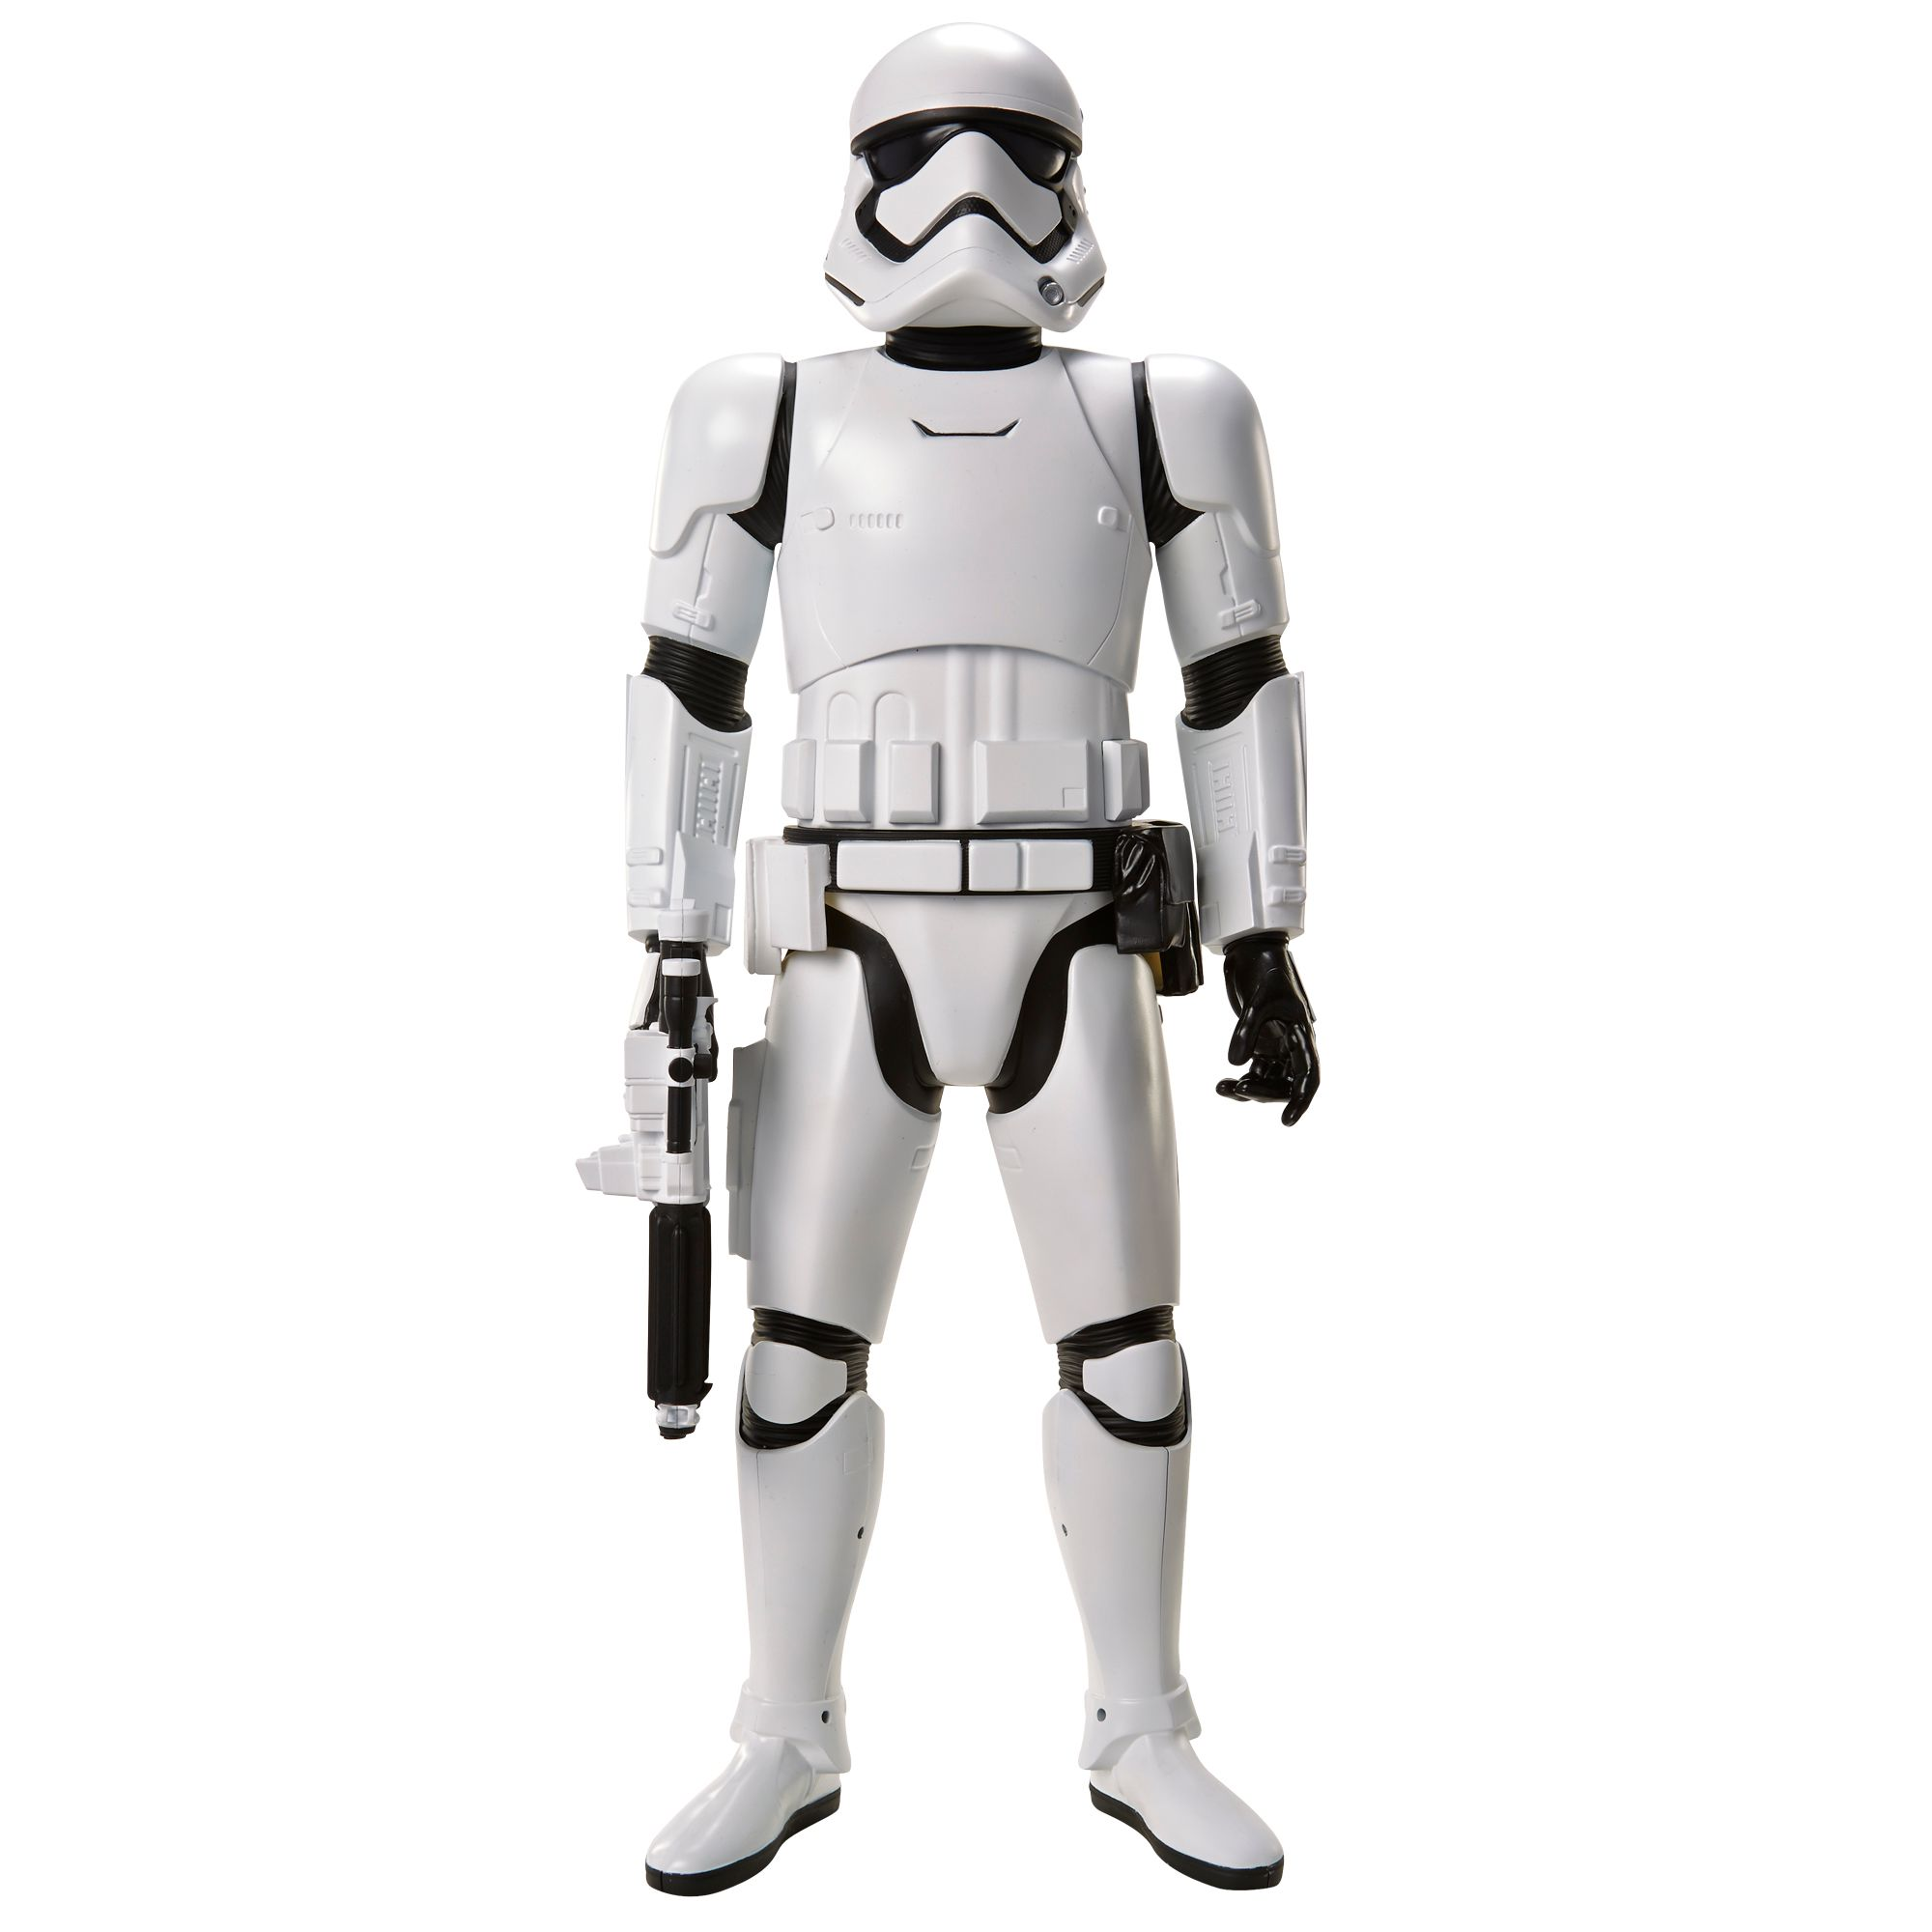 Star Wars The Force Awakens Toy